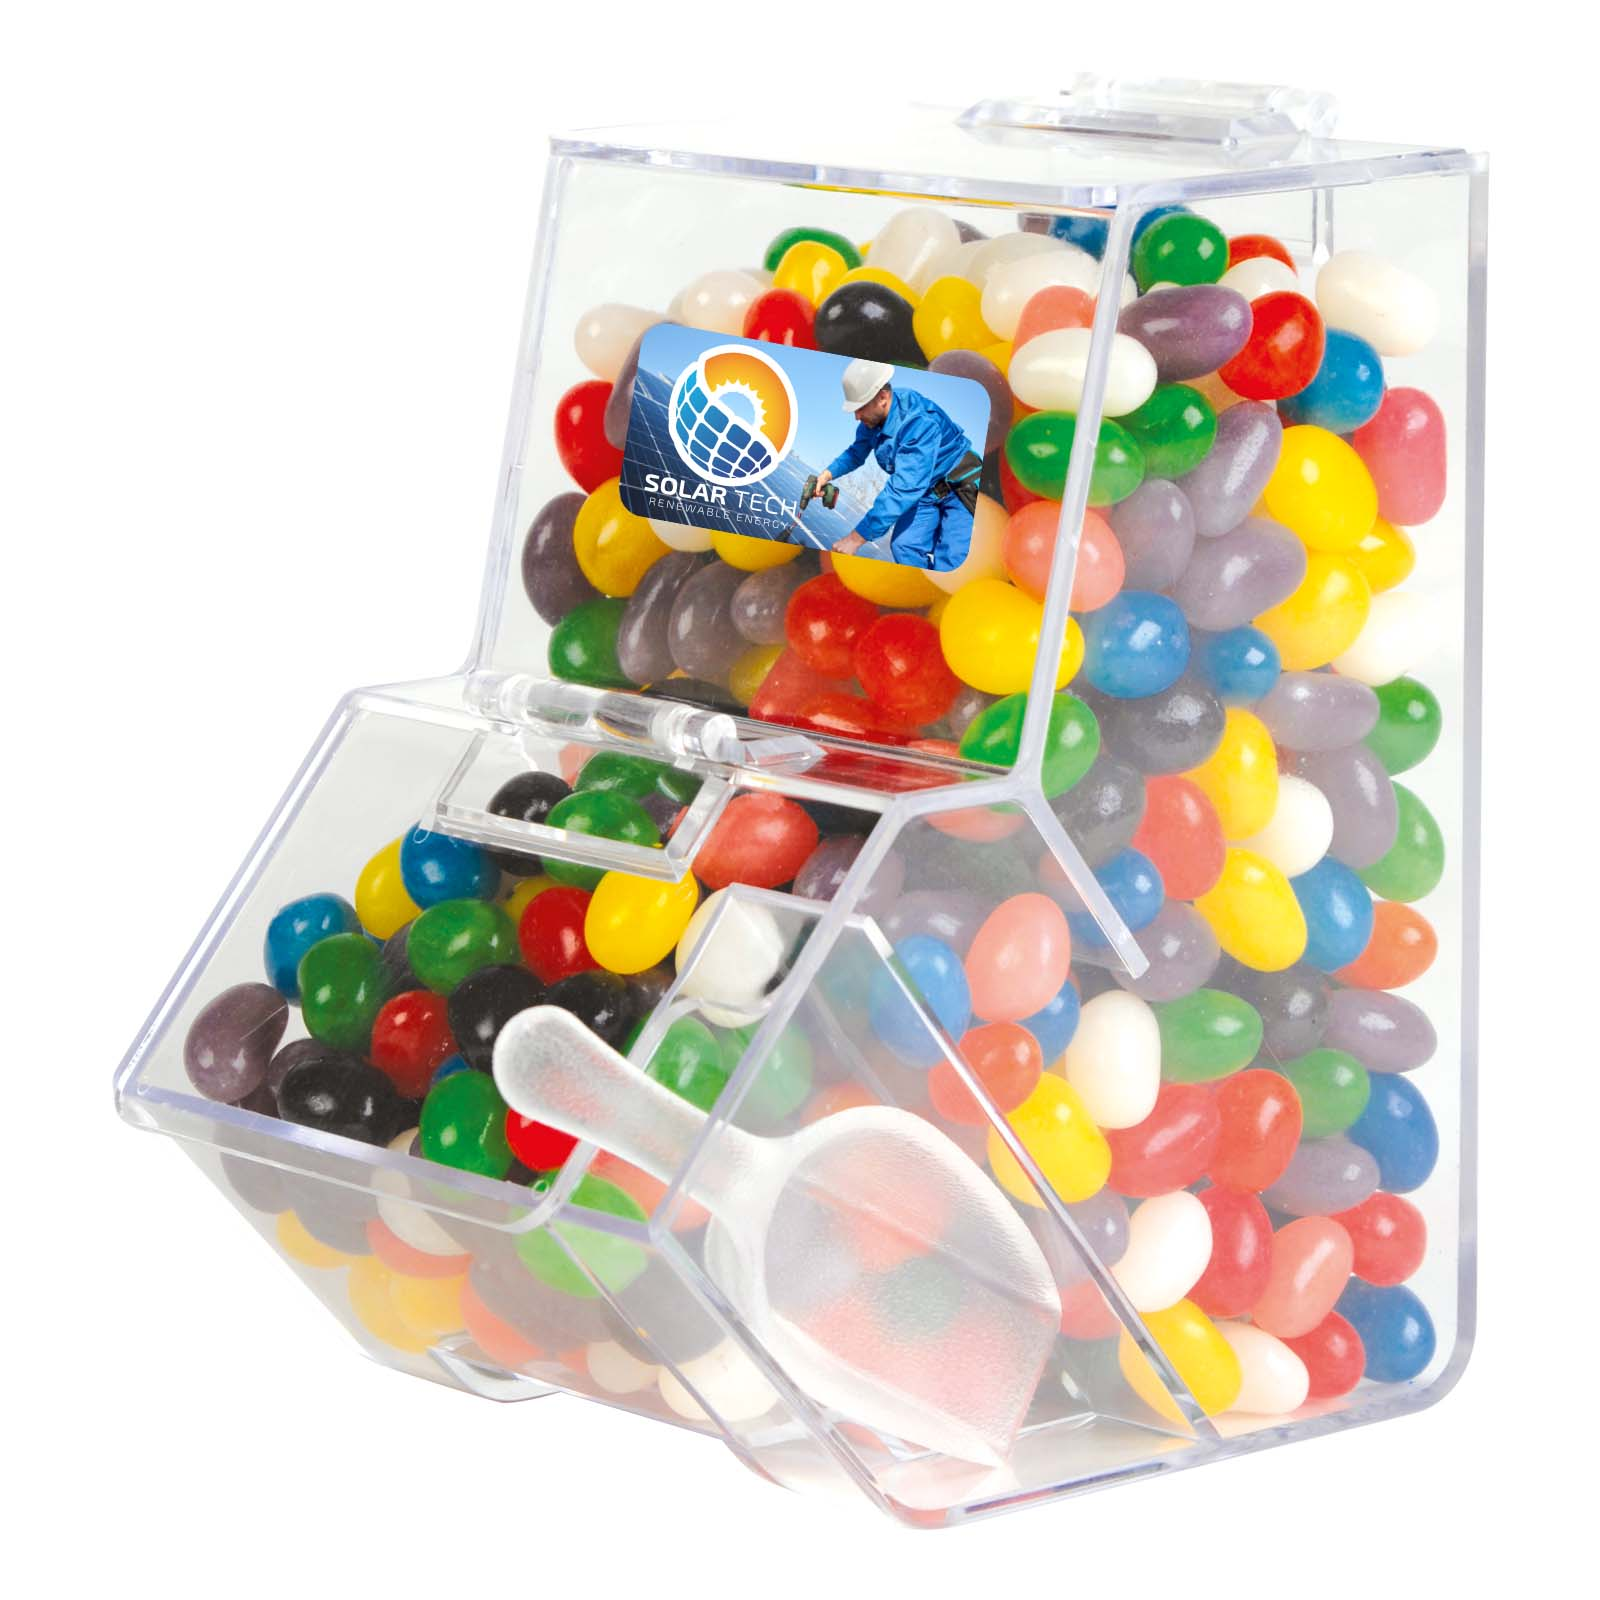 Assorted Colour Mini Jelly Beans in Dispenser - Includes a full colour logo